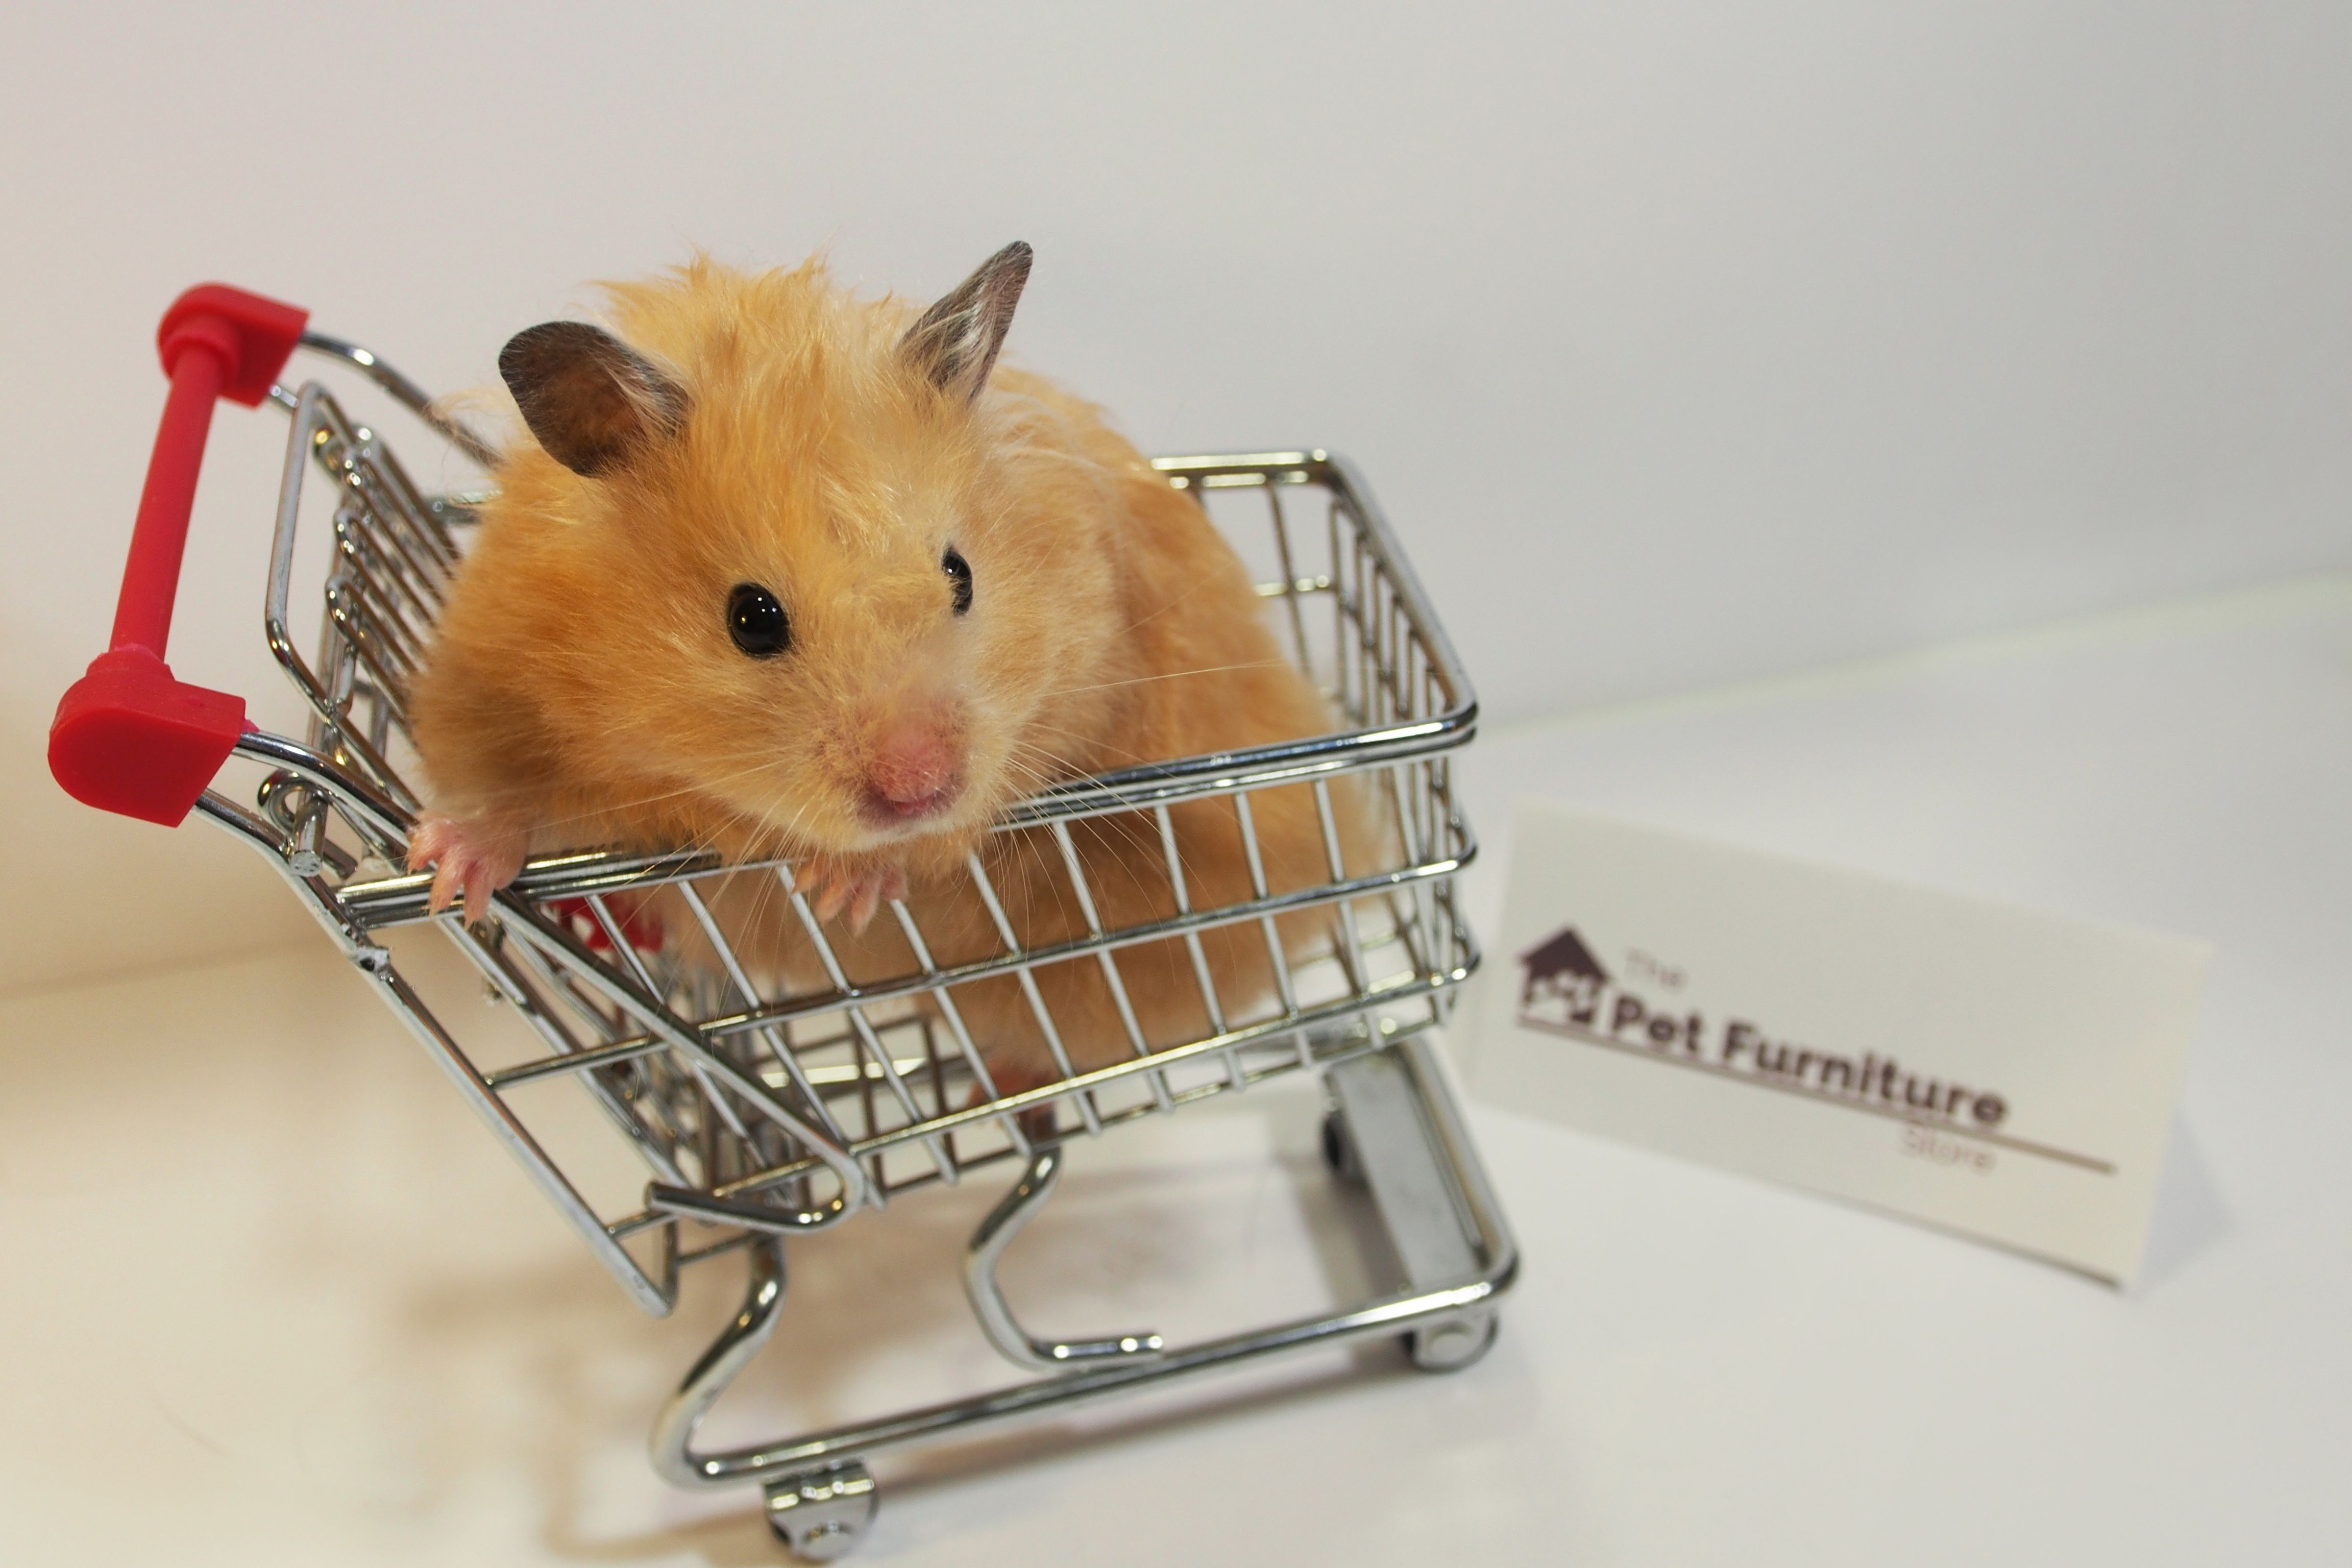 Are You And Your Hamster In The Shopping Mood Visit Thepetfurniturestore Com For All His Furniture Needs Hamsters As Pets Pet Furniture Pets